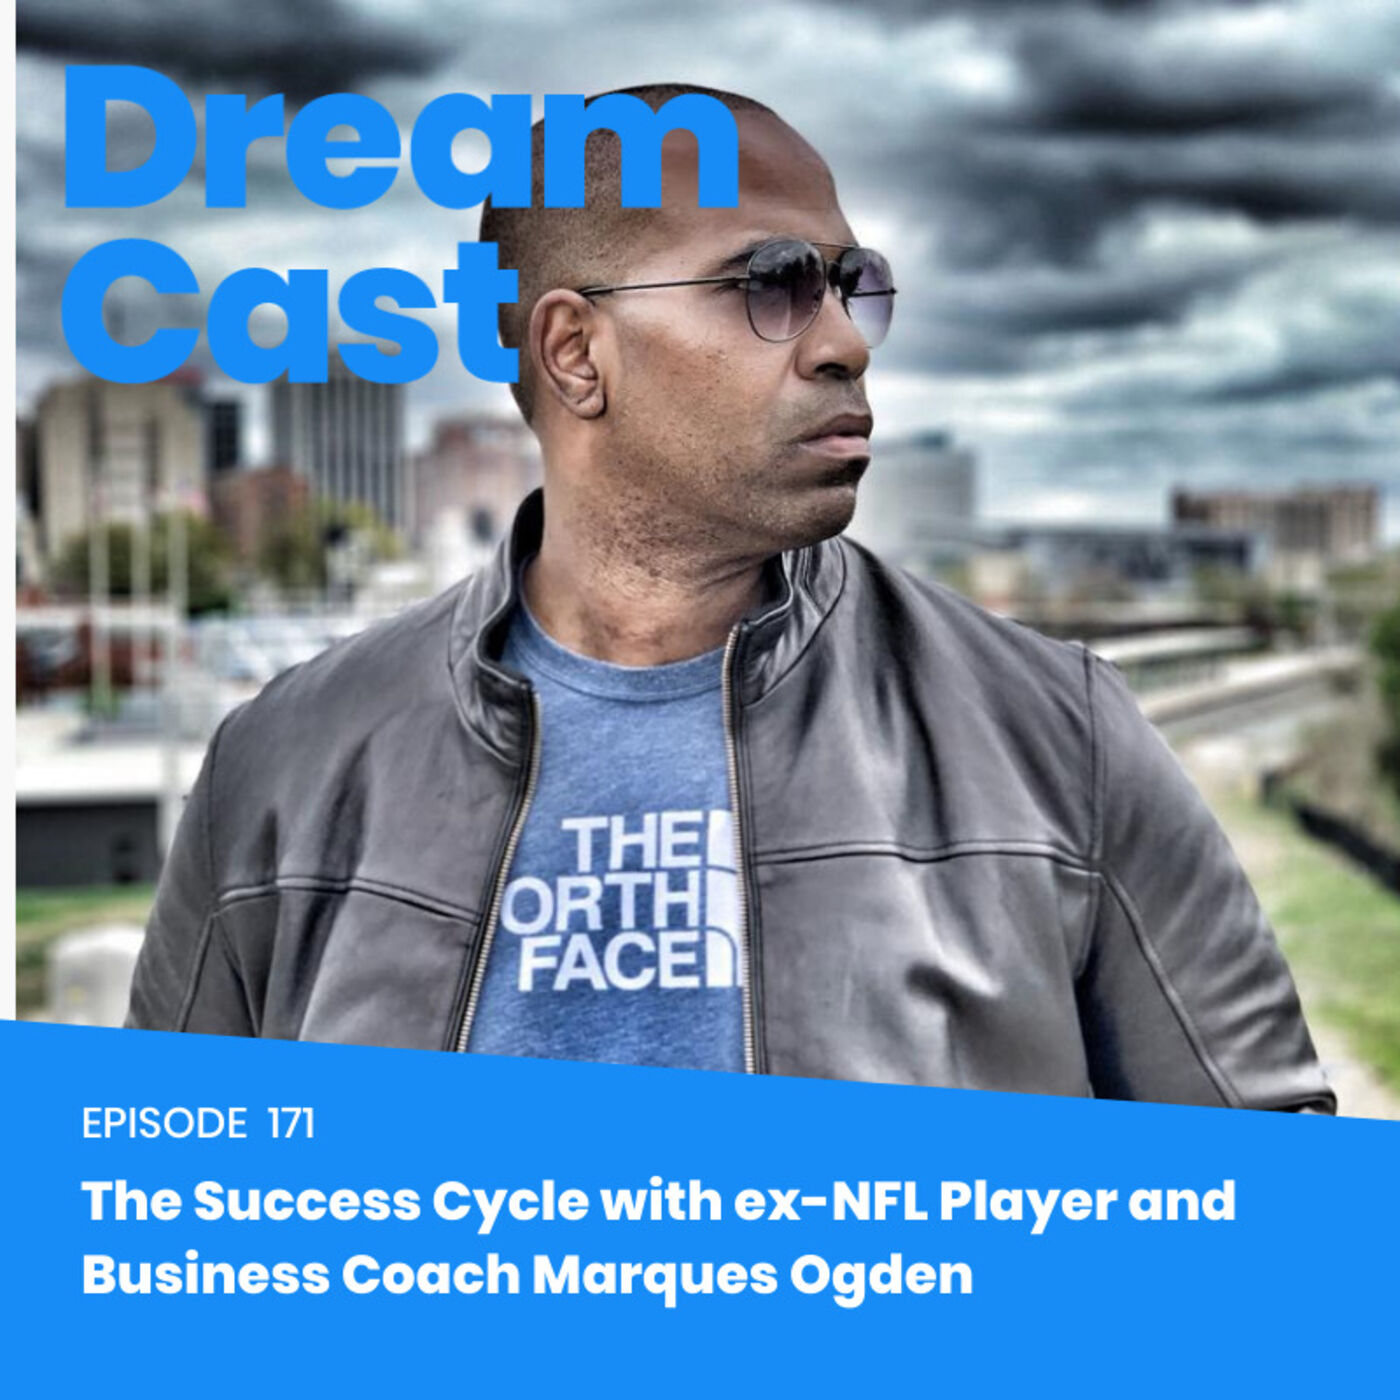 Episode 171 - The Success Cycle with ex-NFL Player and Business Coach Marques Ogden